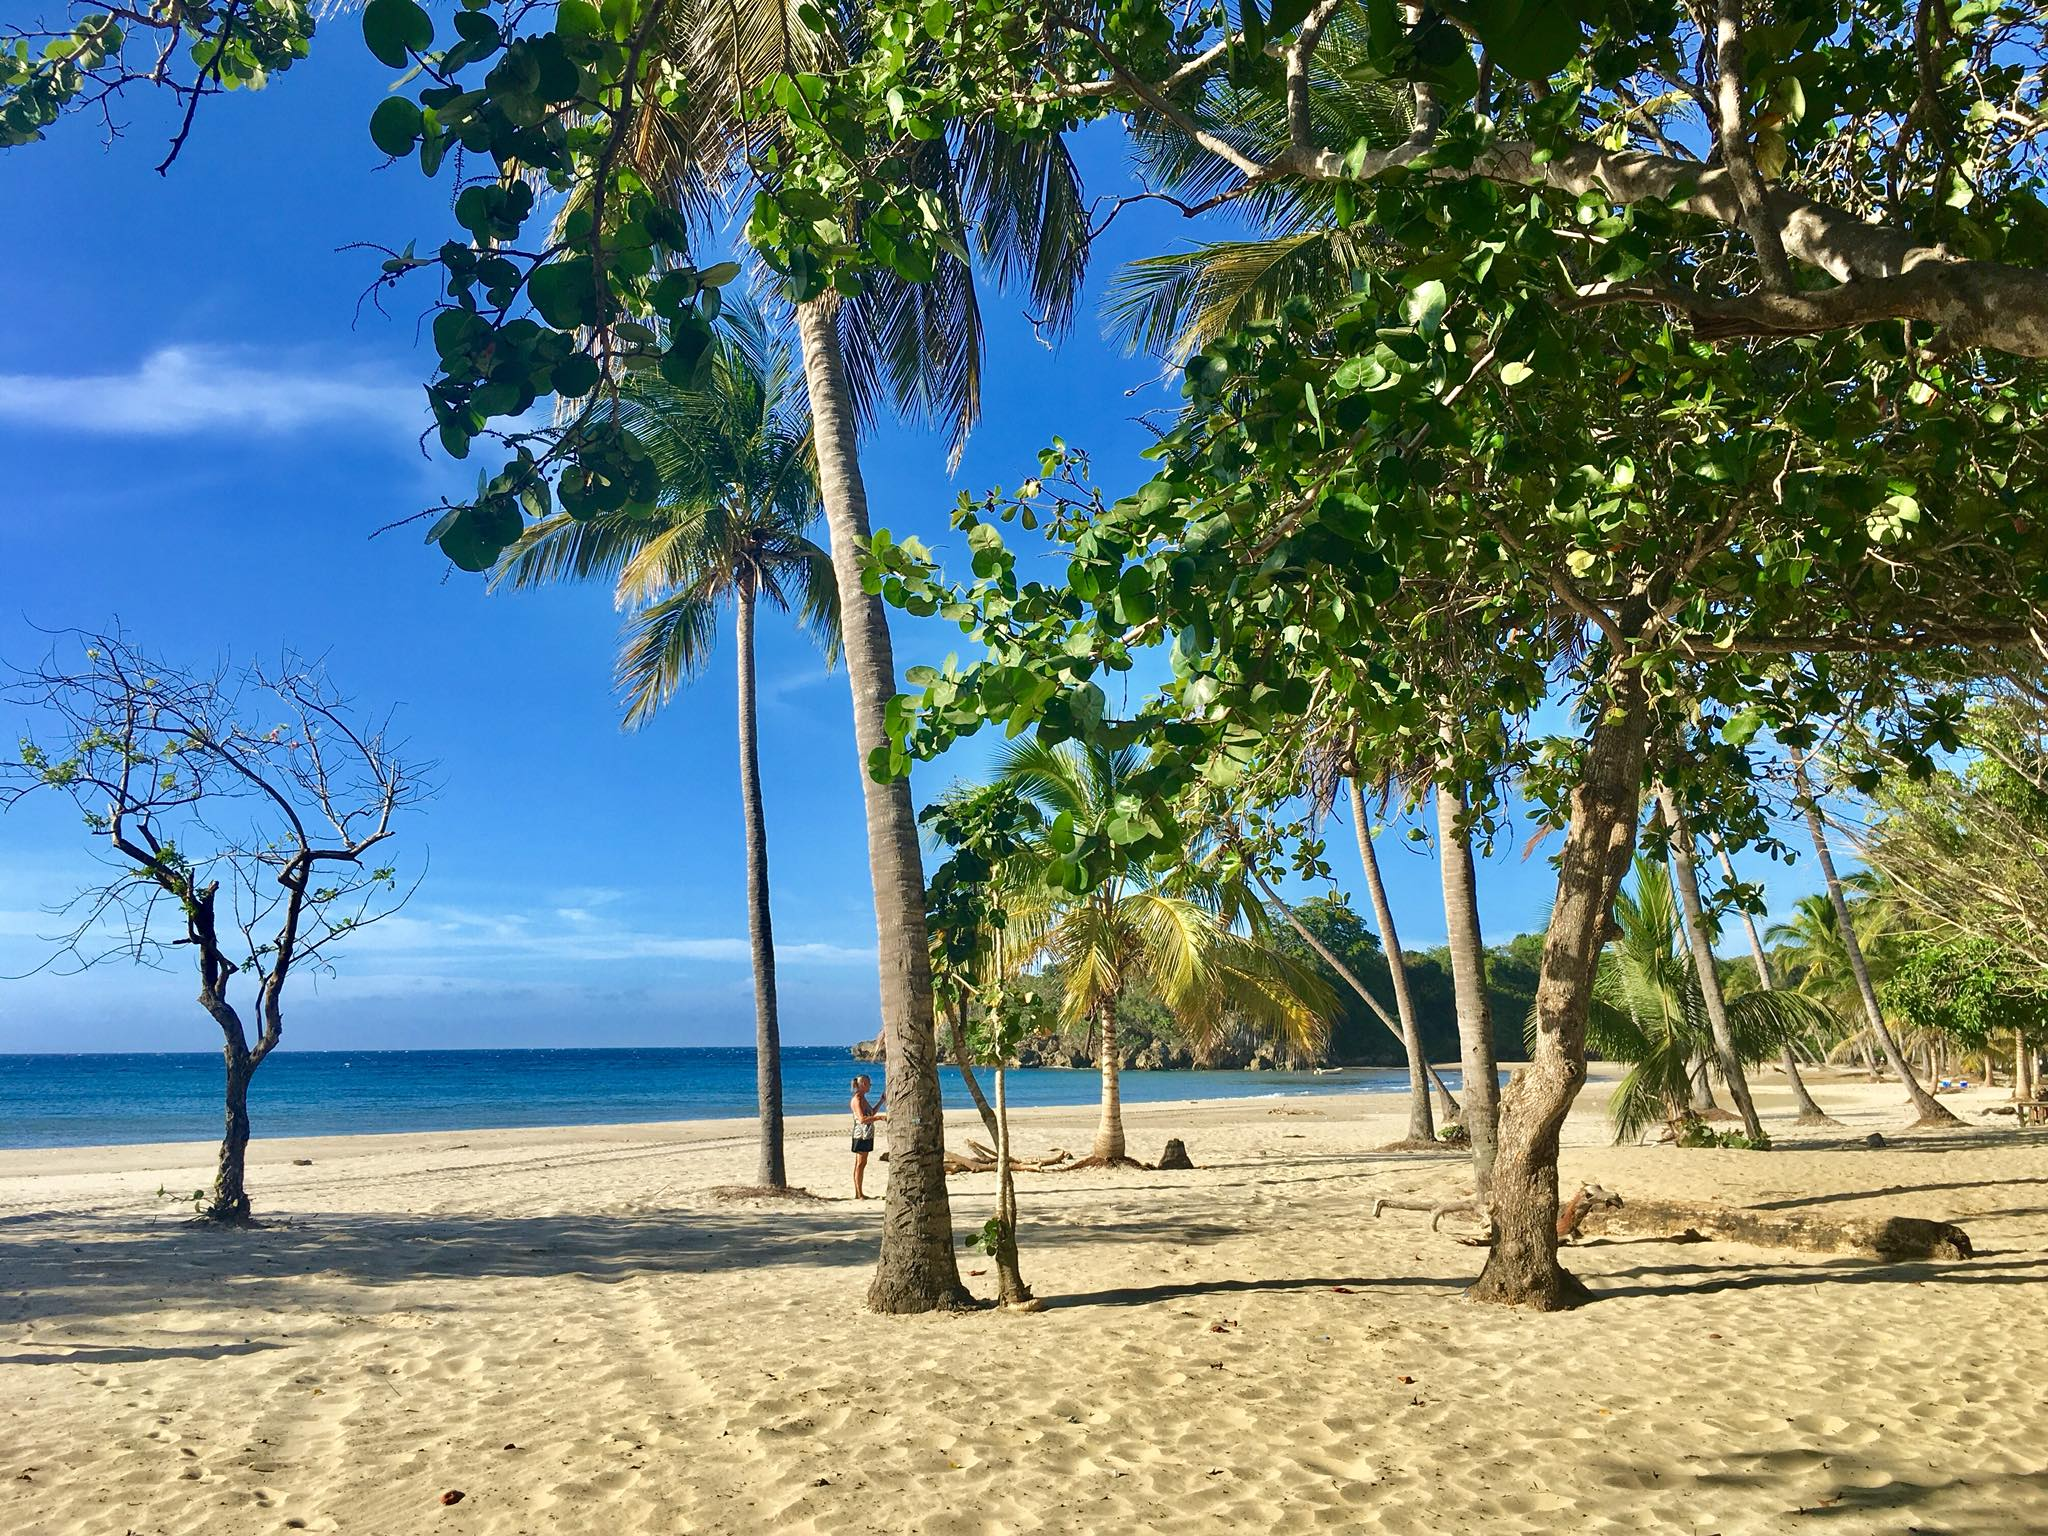 Sailing Life Day 56: Motorbike Trip in Luperon, Dominican Republic